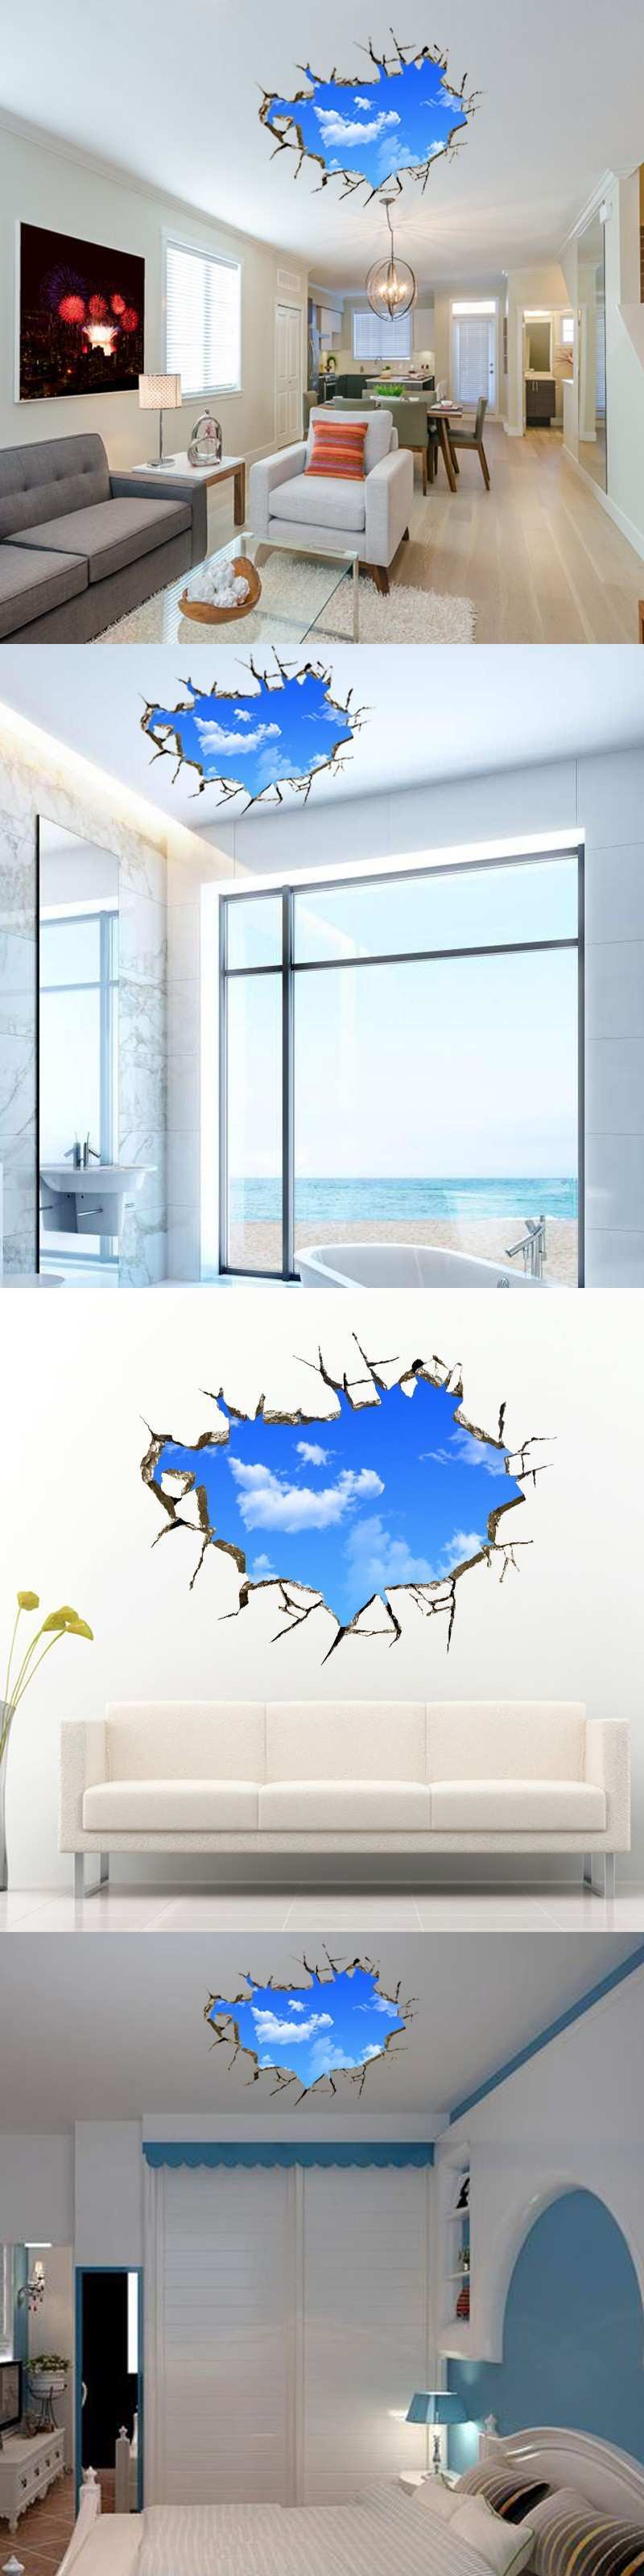 Baby Wall Stickers Awesome Creative Home Decor 3d Wall Stickers Blue Sky White Cloud Pattern